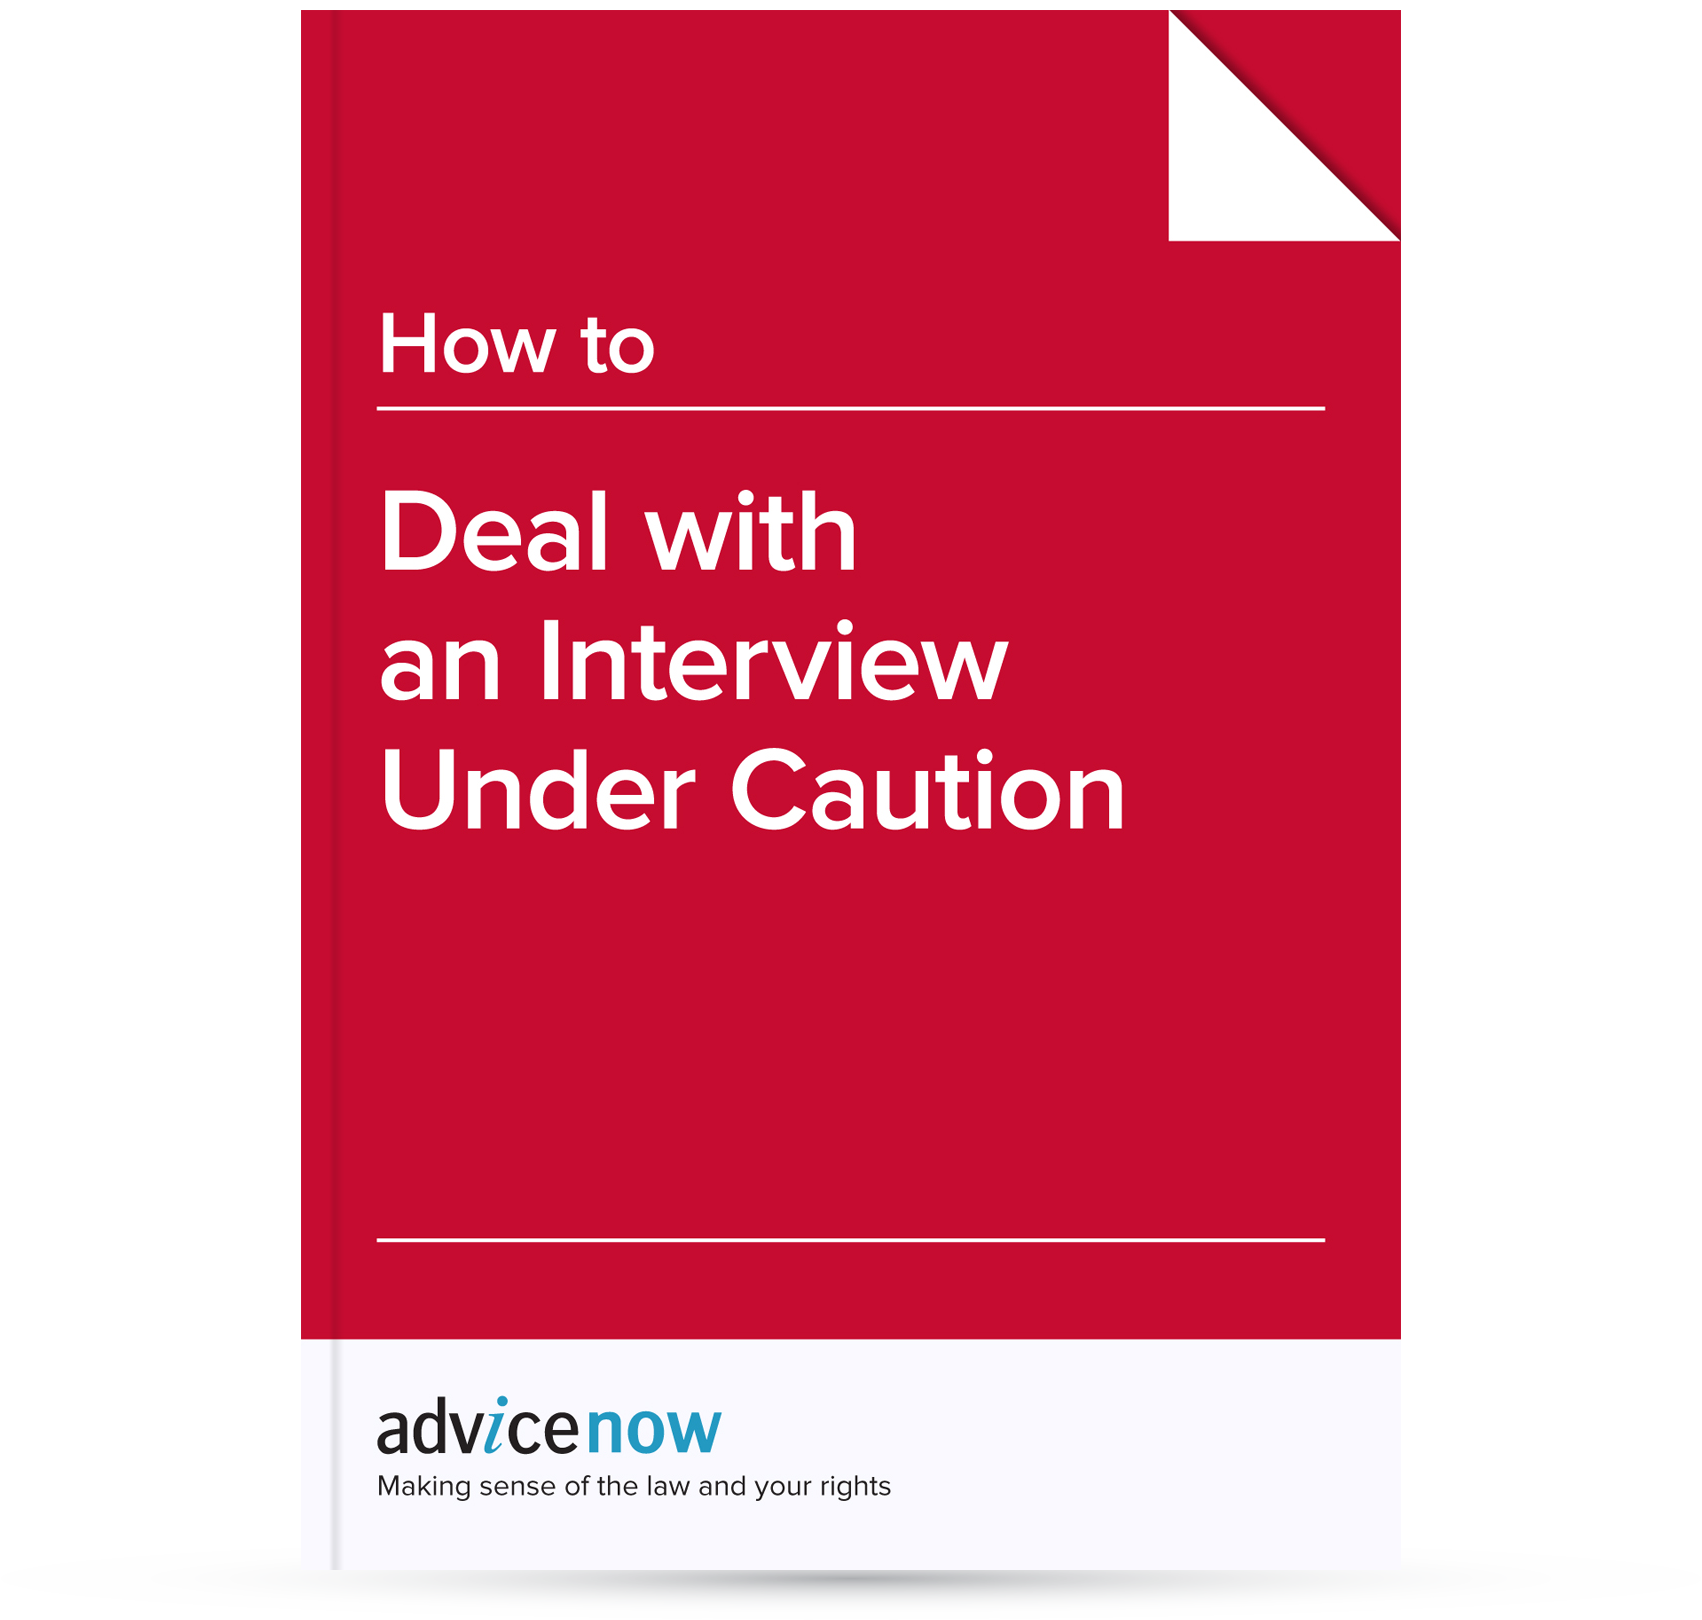 how to deal an interview under caution advicenow